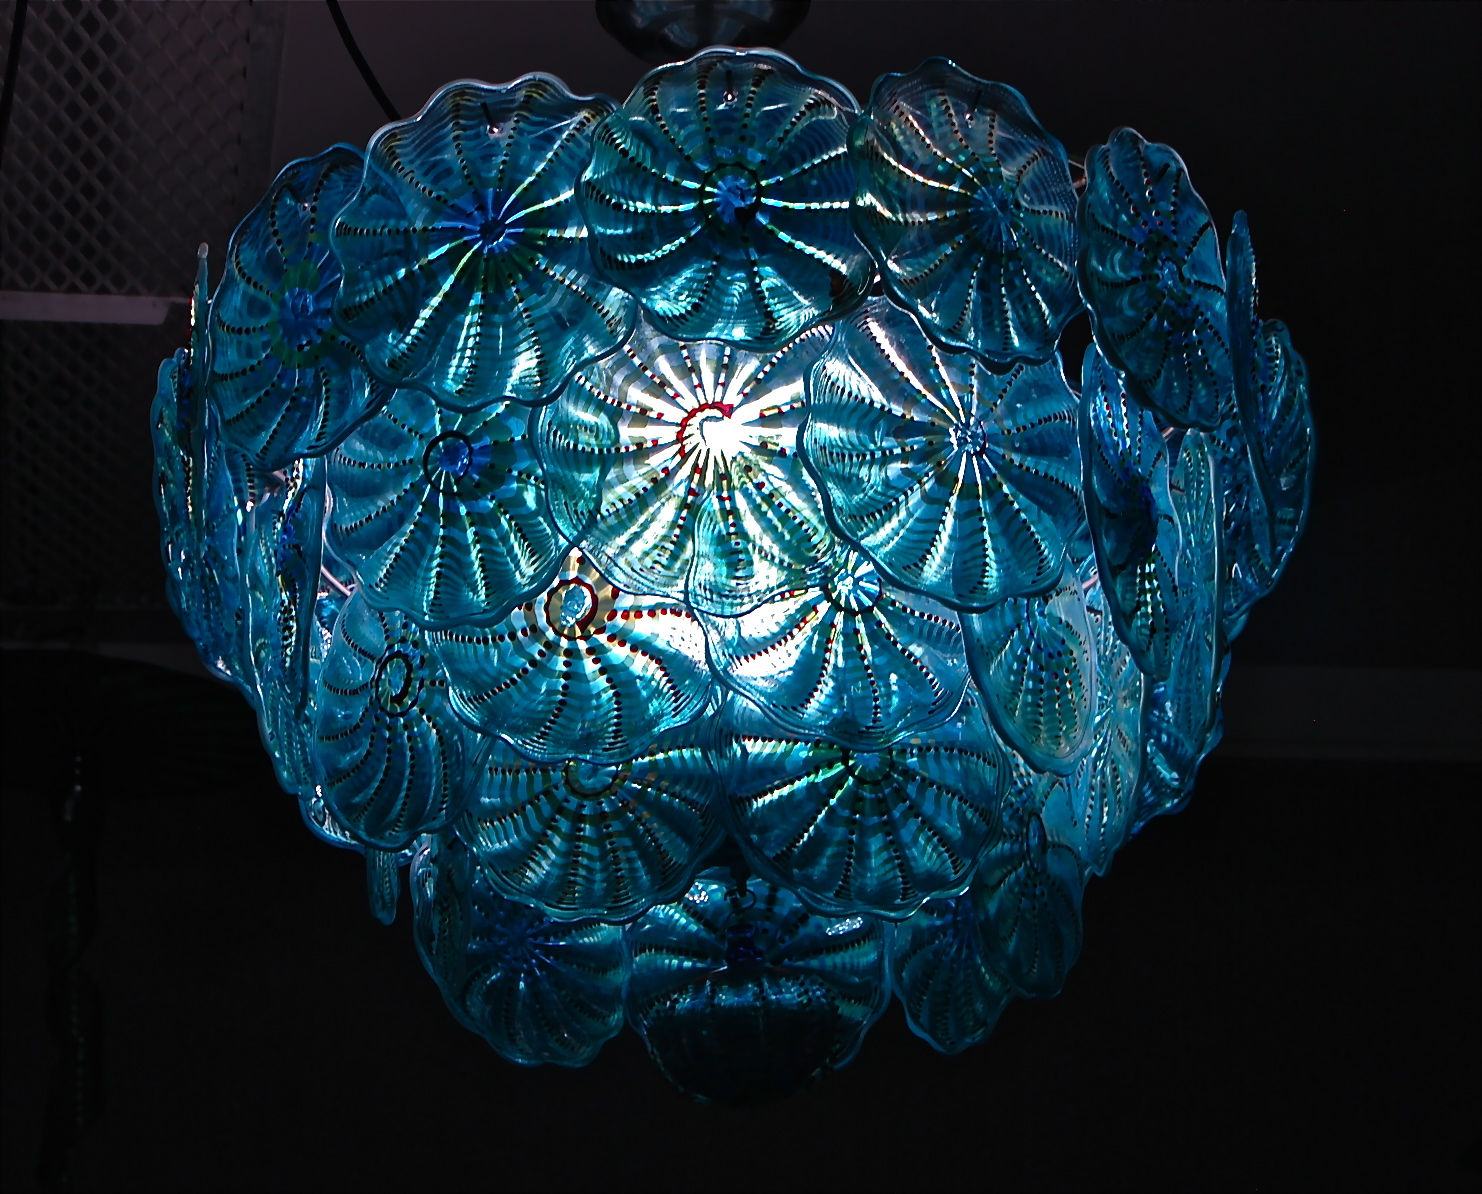 Rondel Chandelier, 46 pieces hand blown rondels, Turquoise cathedral, decorated silver luster, ruby glass pearls, white opal lip and applied iridescence.